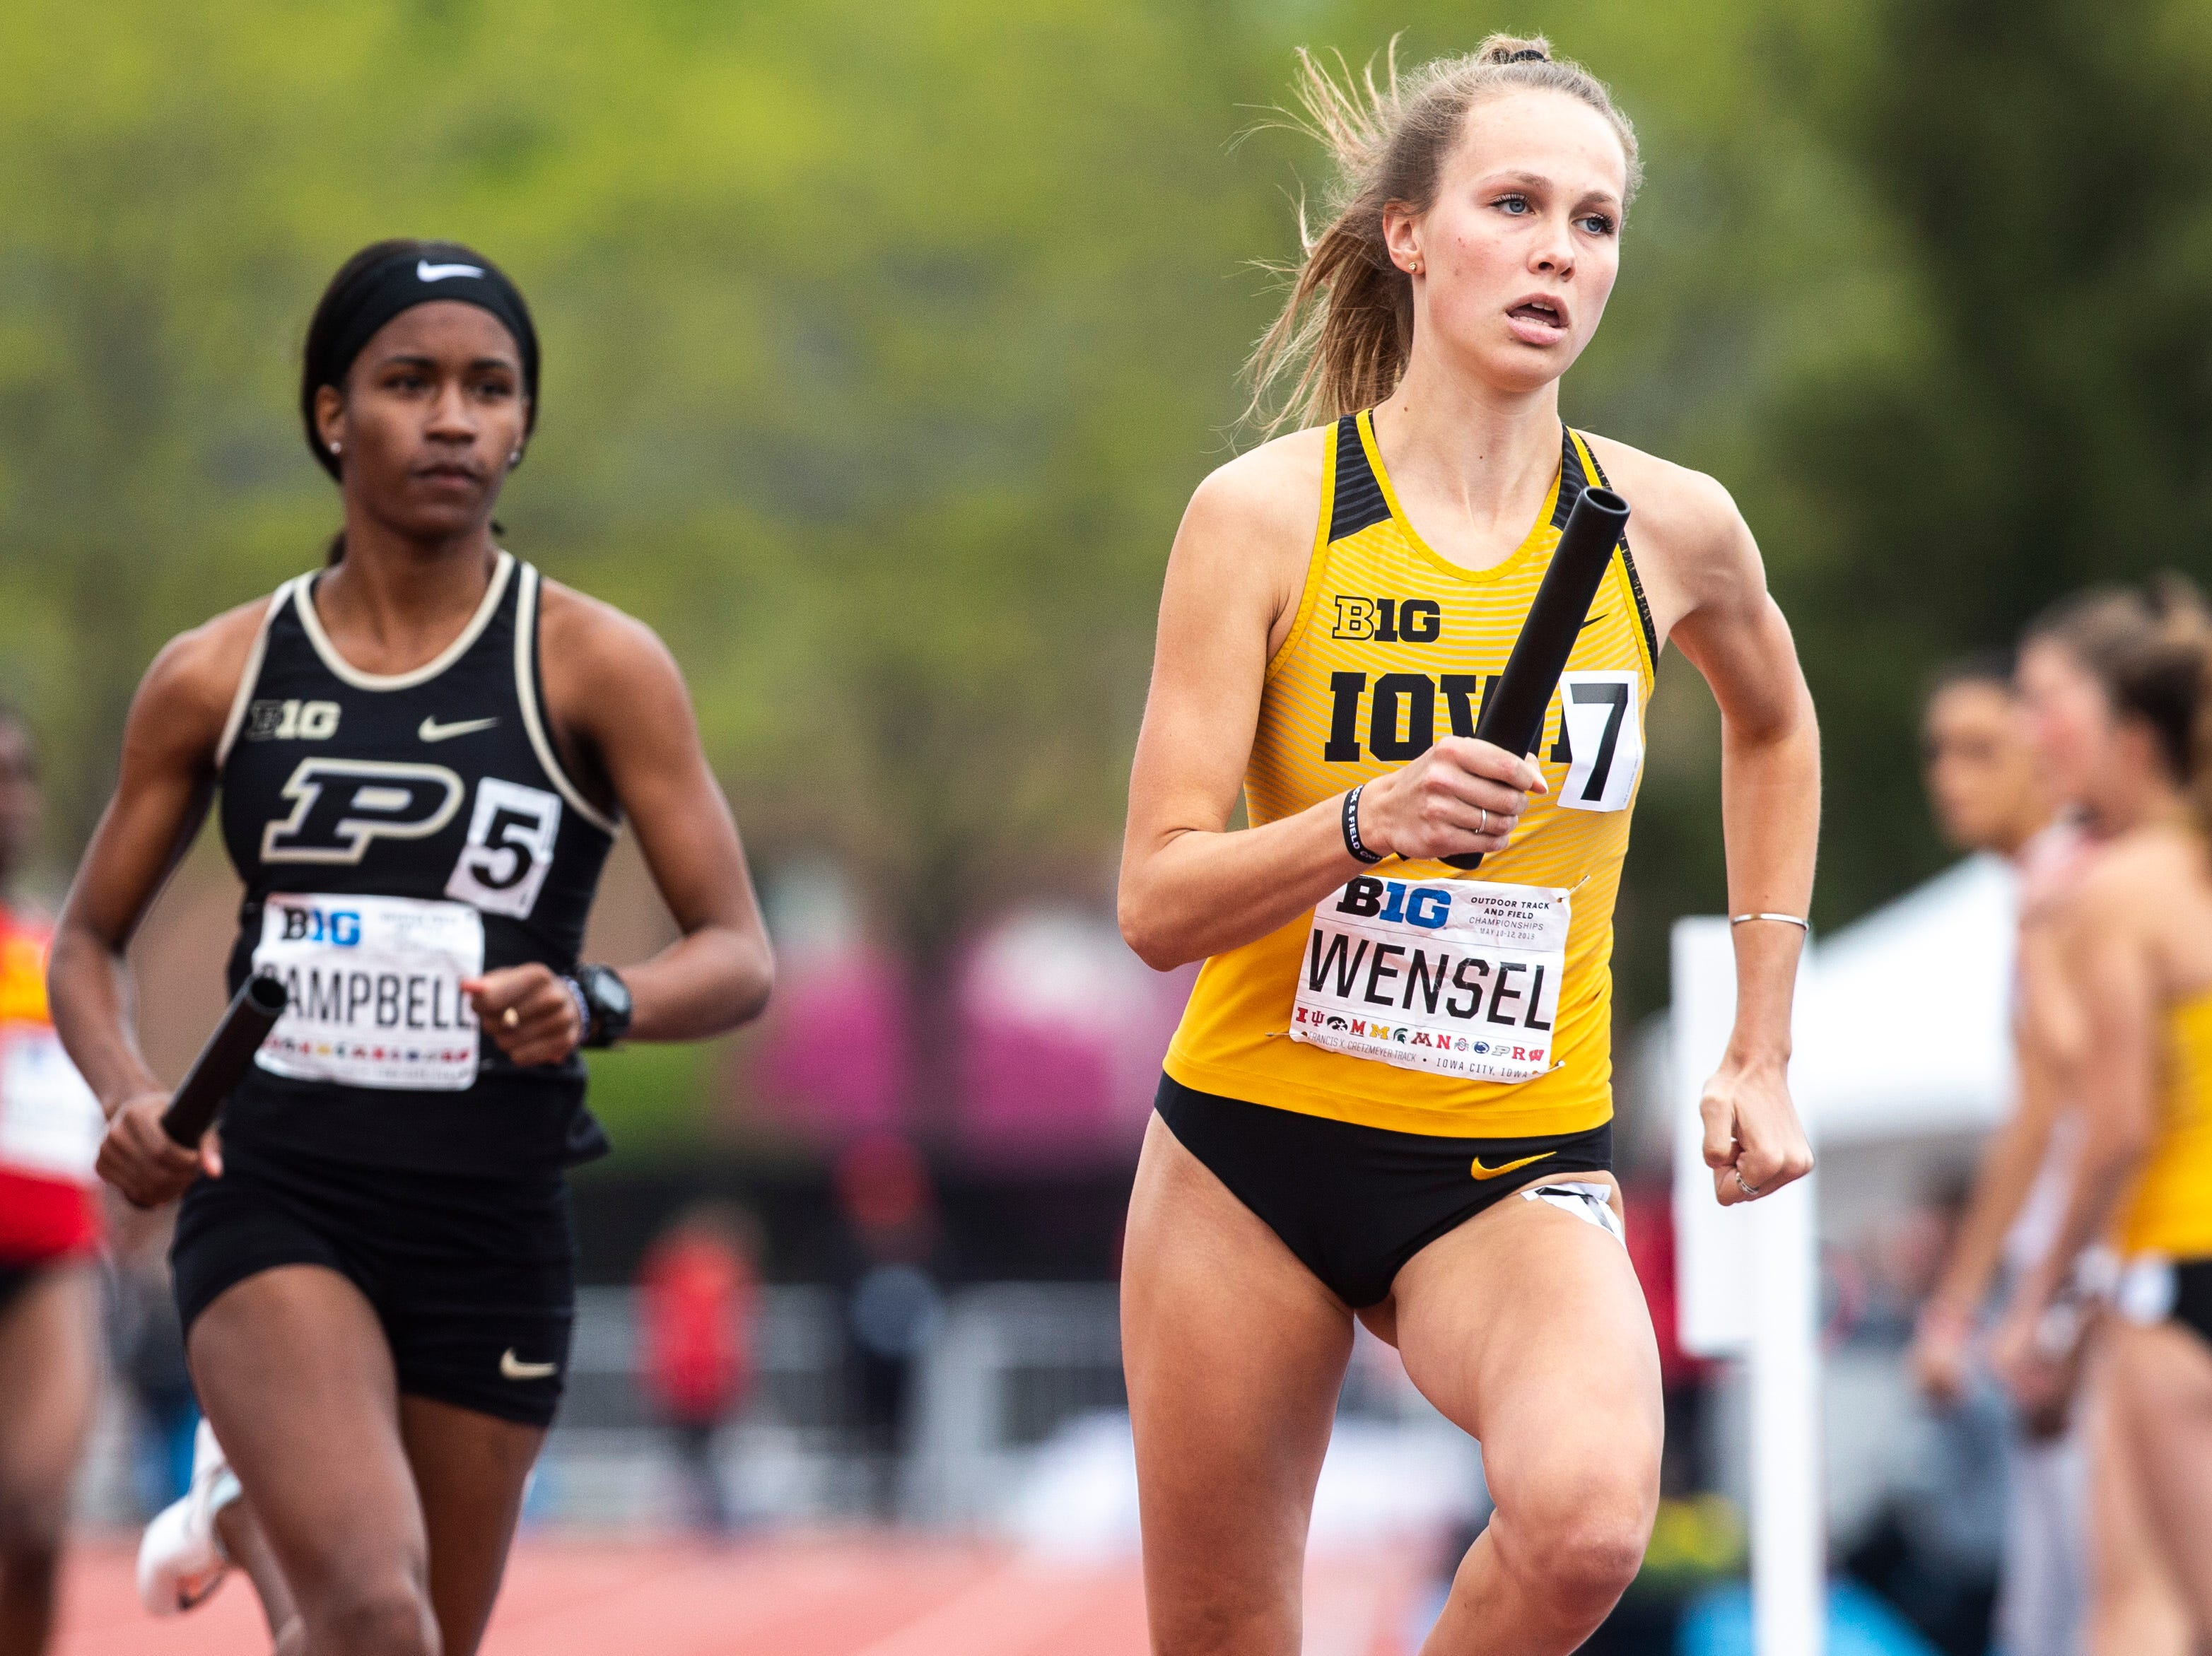 Iowa's Payton Wensel takes a handoff during the final day of Big Ten track and field outdoor championships, Sunday, May 12, 2019, at Francis X. Cretzmeyer Track on the University of Iowa campus in Iowa City, Iowa.